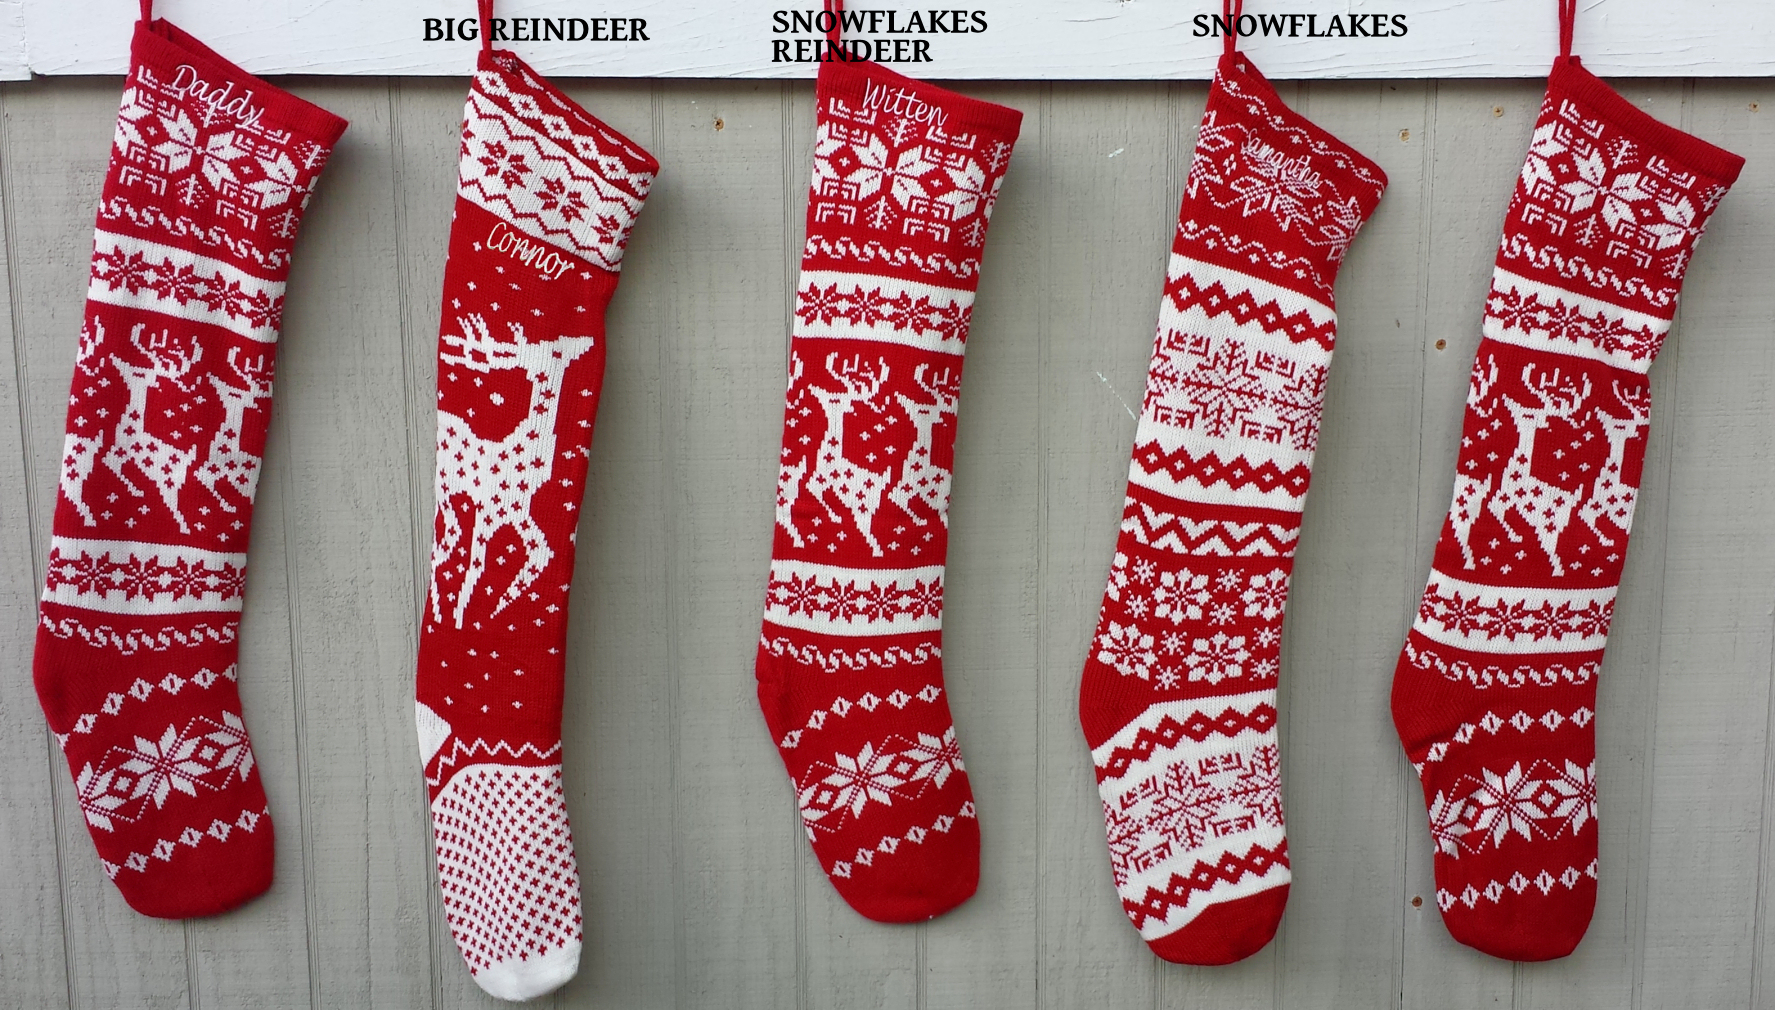 knit christmas stockings knitted christmas stockings red and white ... VSDTAUP